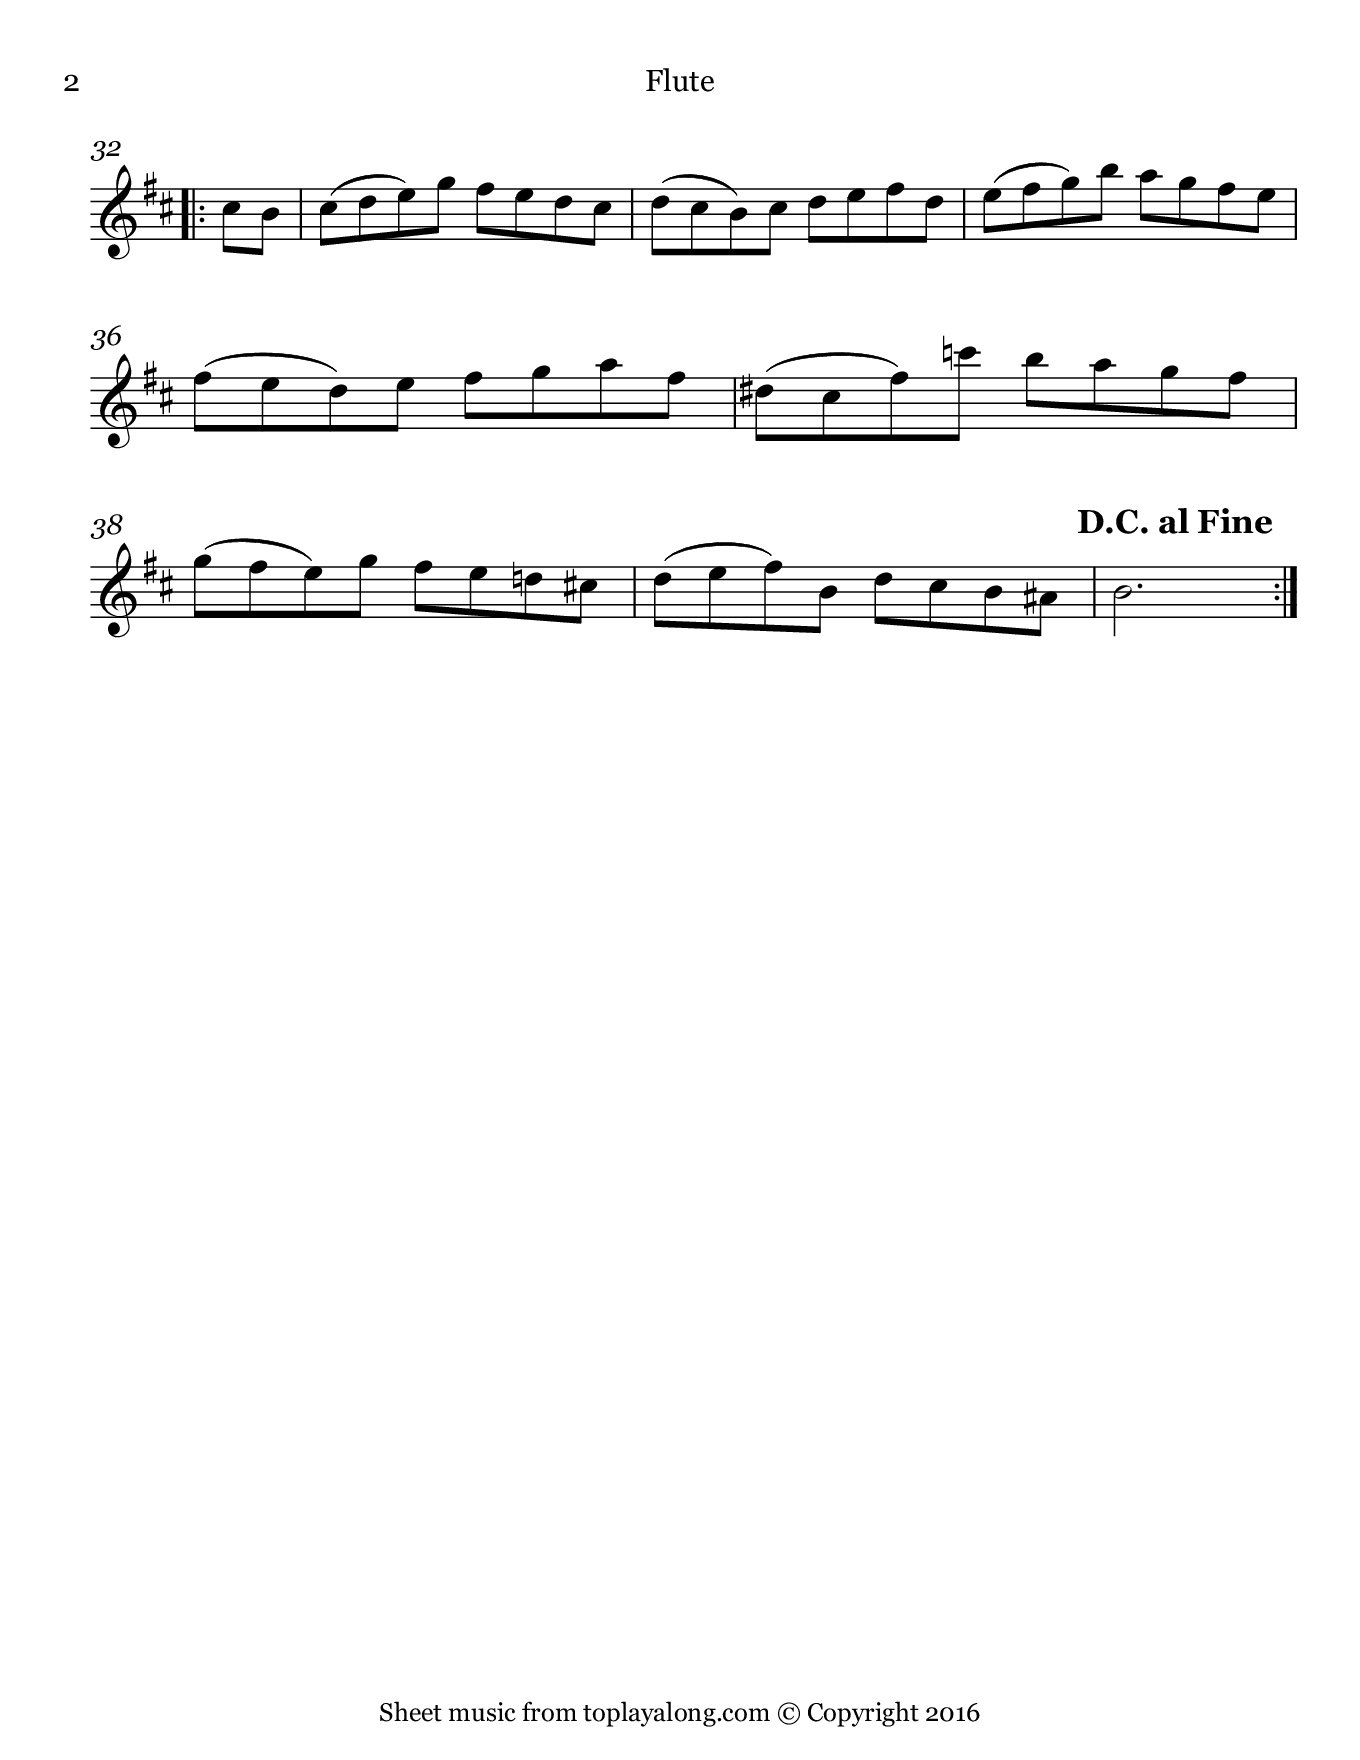 Orchestral Suite No. 2 (IV. Bourrée) by J. S. Bach. Sheet music for Flute, page 2.